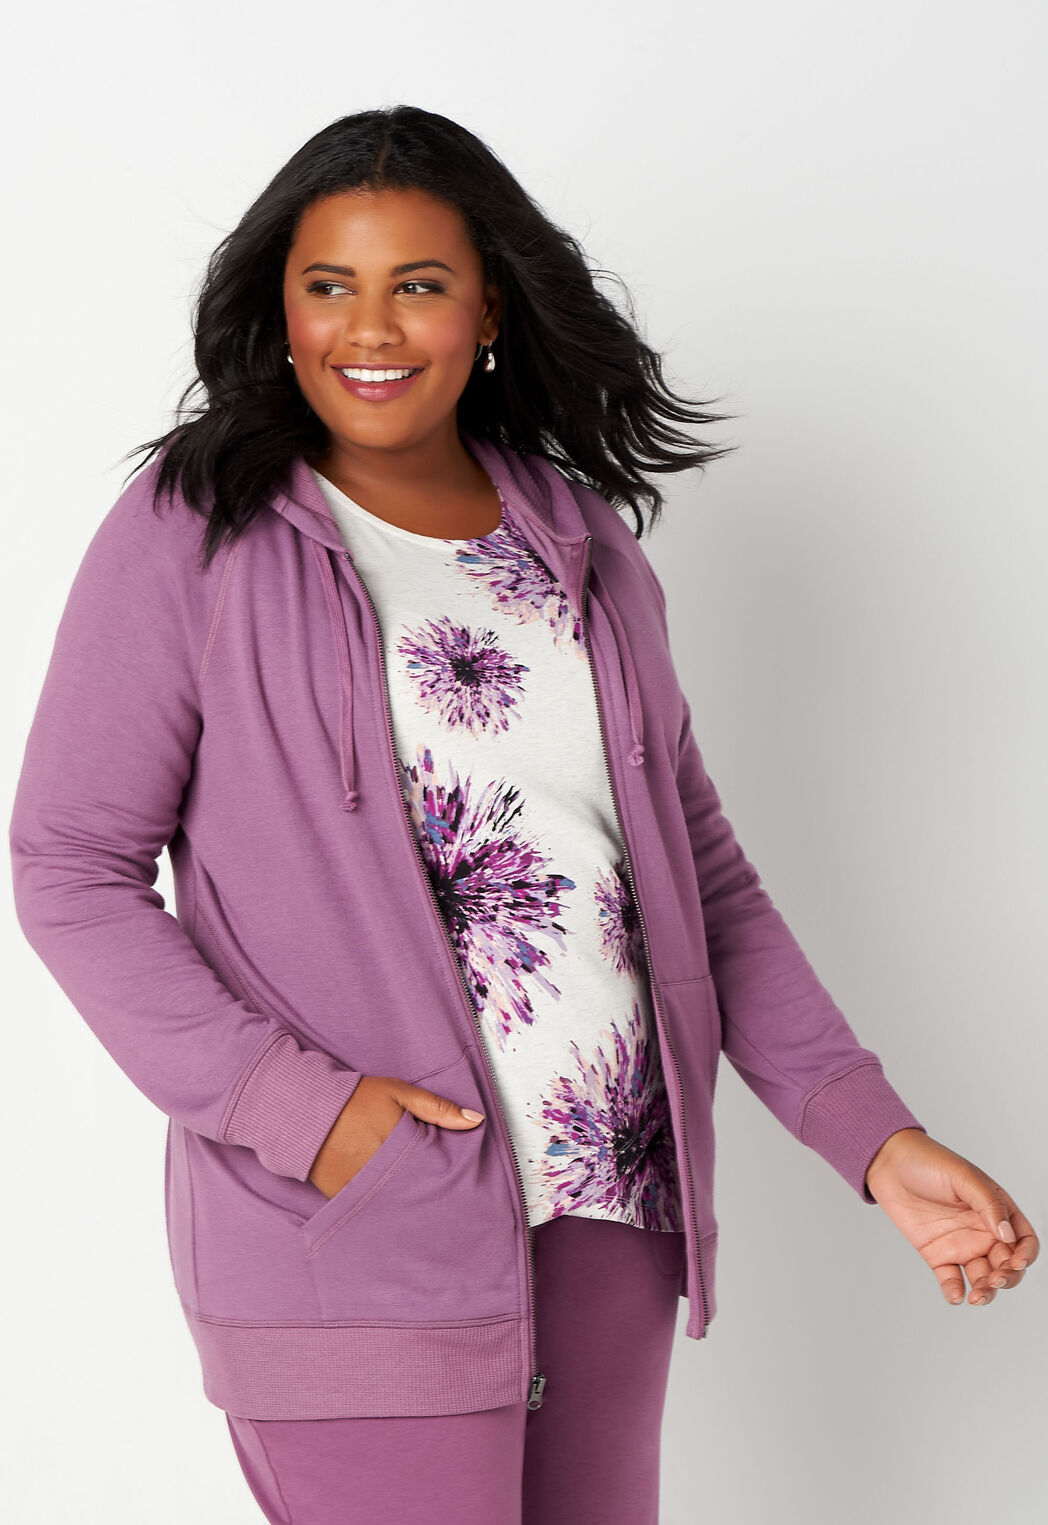 e42270a0dab ... Plus Size Hooded Textured Zip Up With Rib Trim. add to wish list · add  to wish list